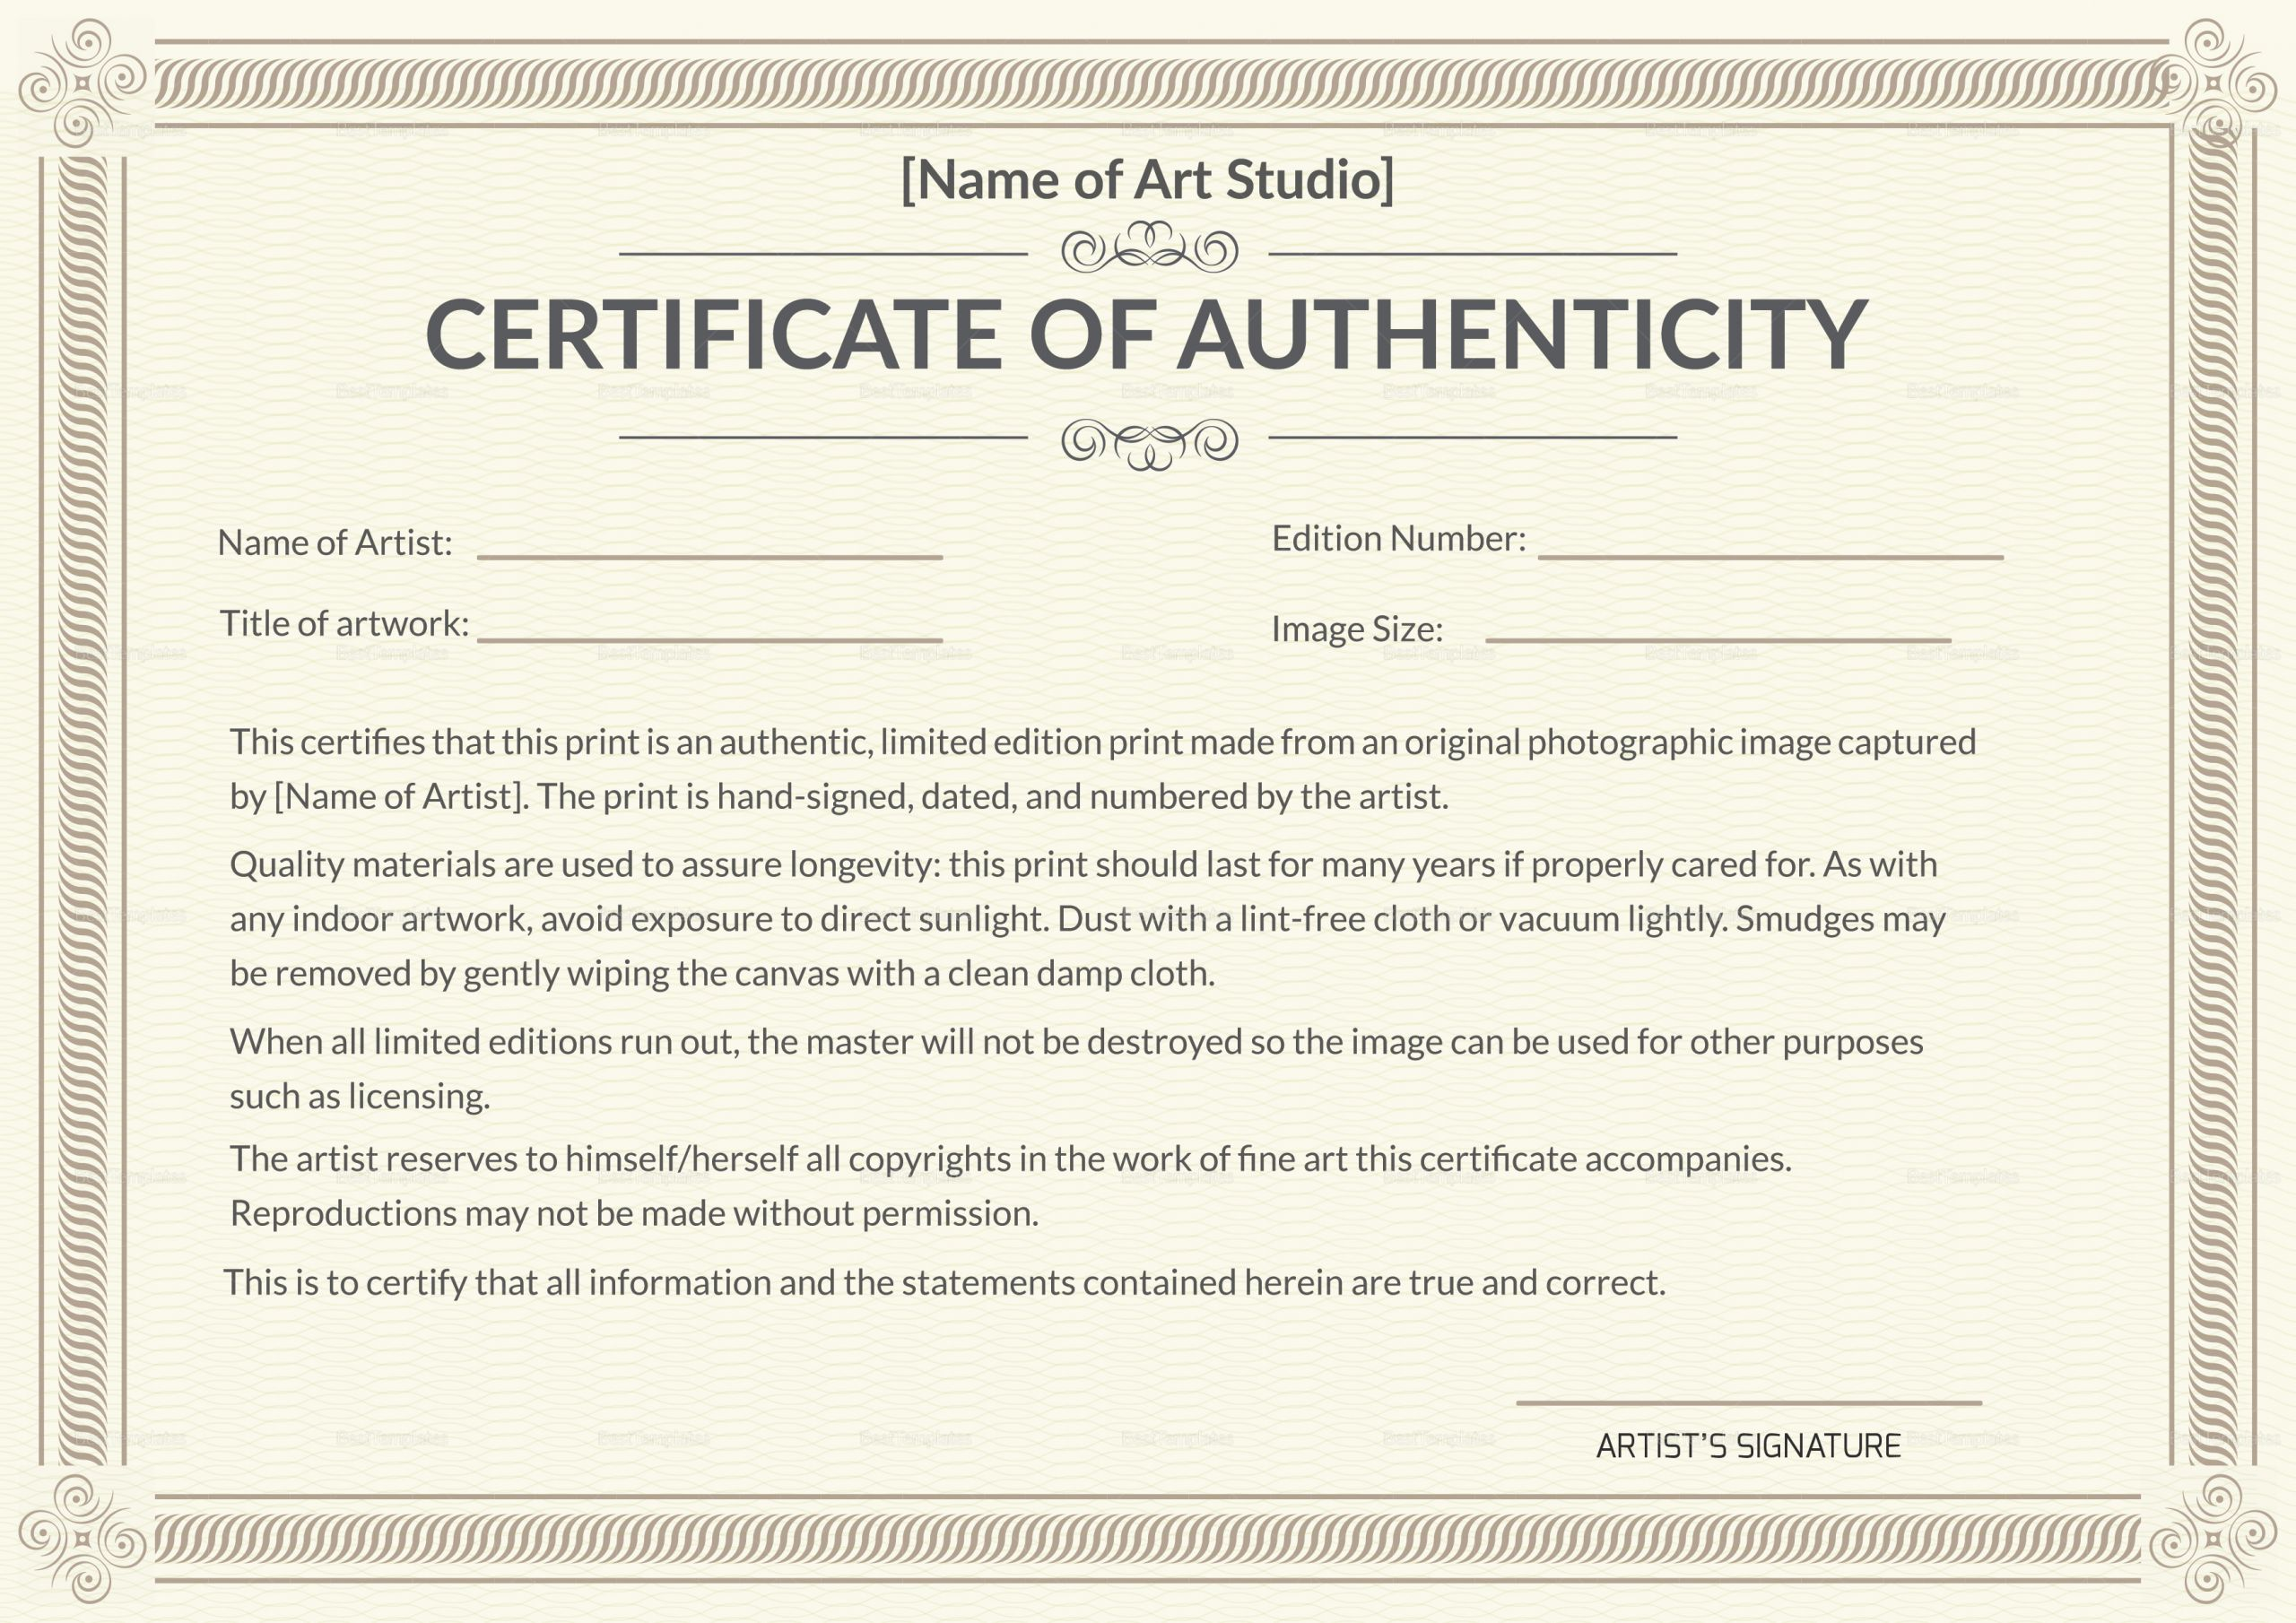 Art Certificate Of Authenticity Template Beautiful Printable Authenticity Certificate Design Template In Psd